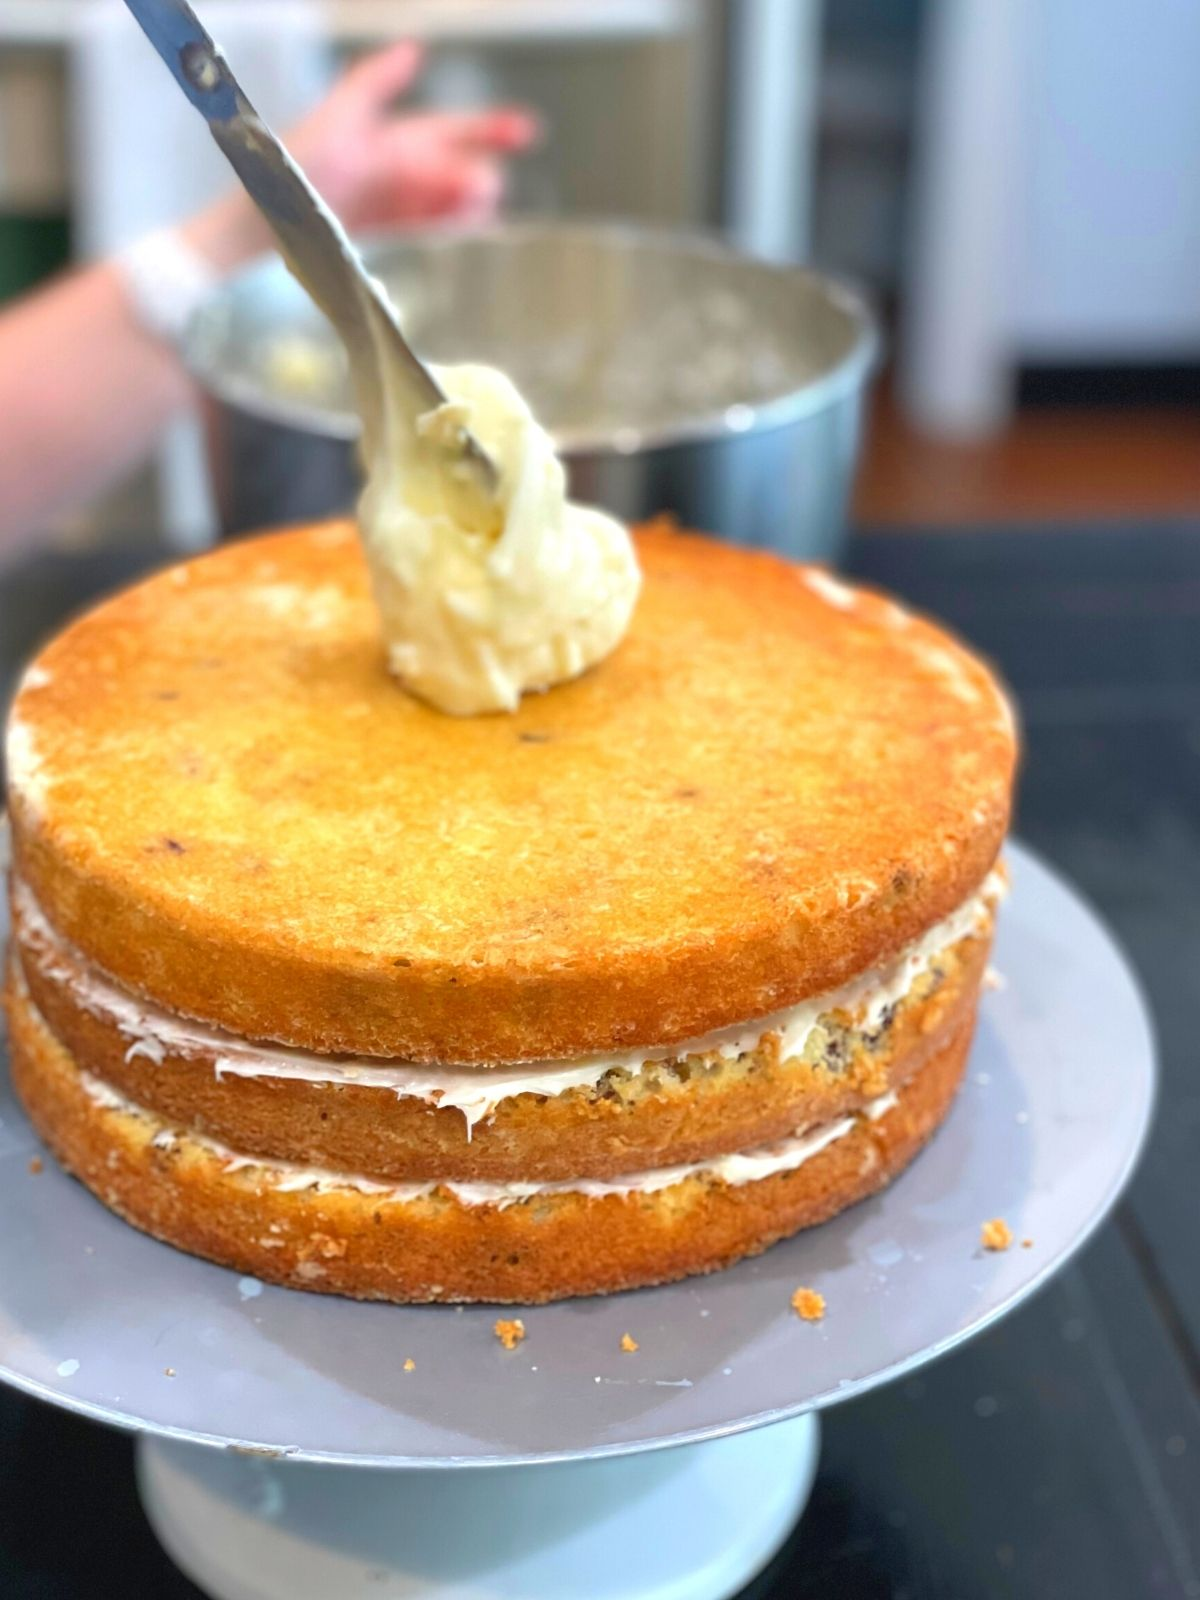 A three-layer cake ready to be frosted on the top and sides with an icing spatula.